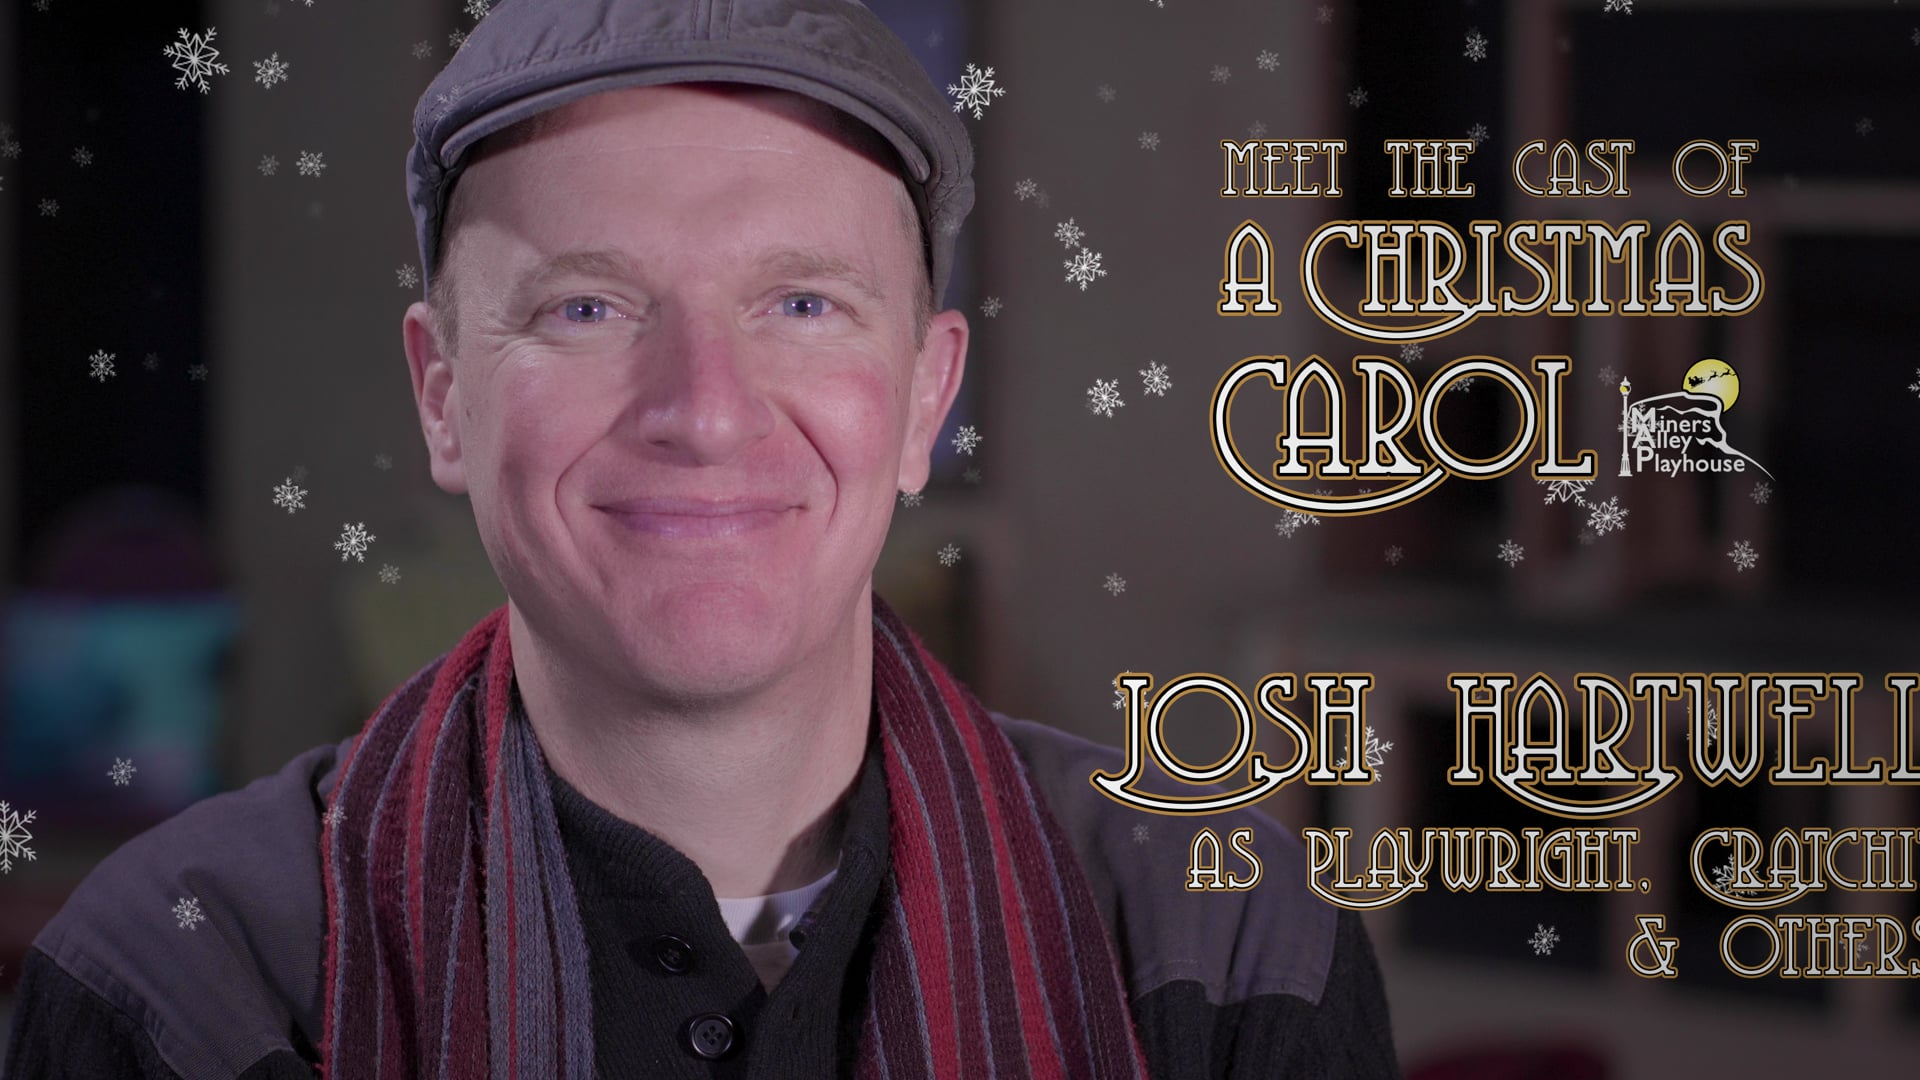 """MAP - Meet the Cast of """"A Christmas Carol"""" (Josh Hartwell as Playwright/Adapter, Bob Cratchit and others)"""